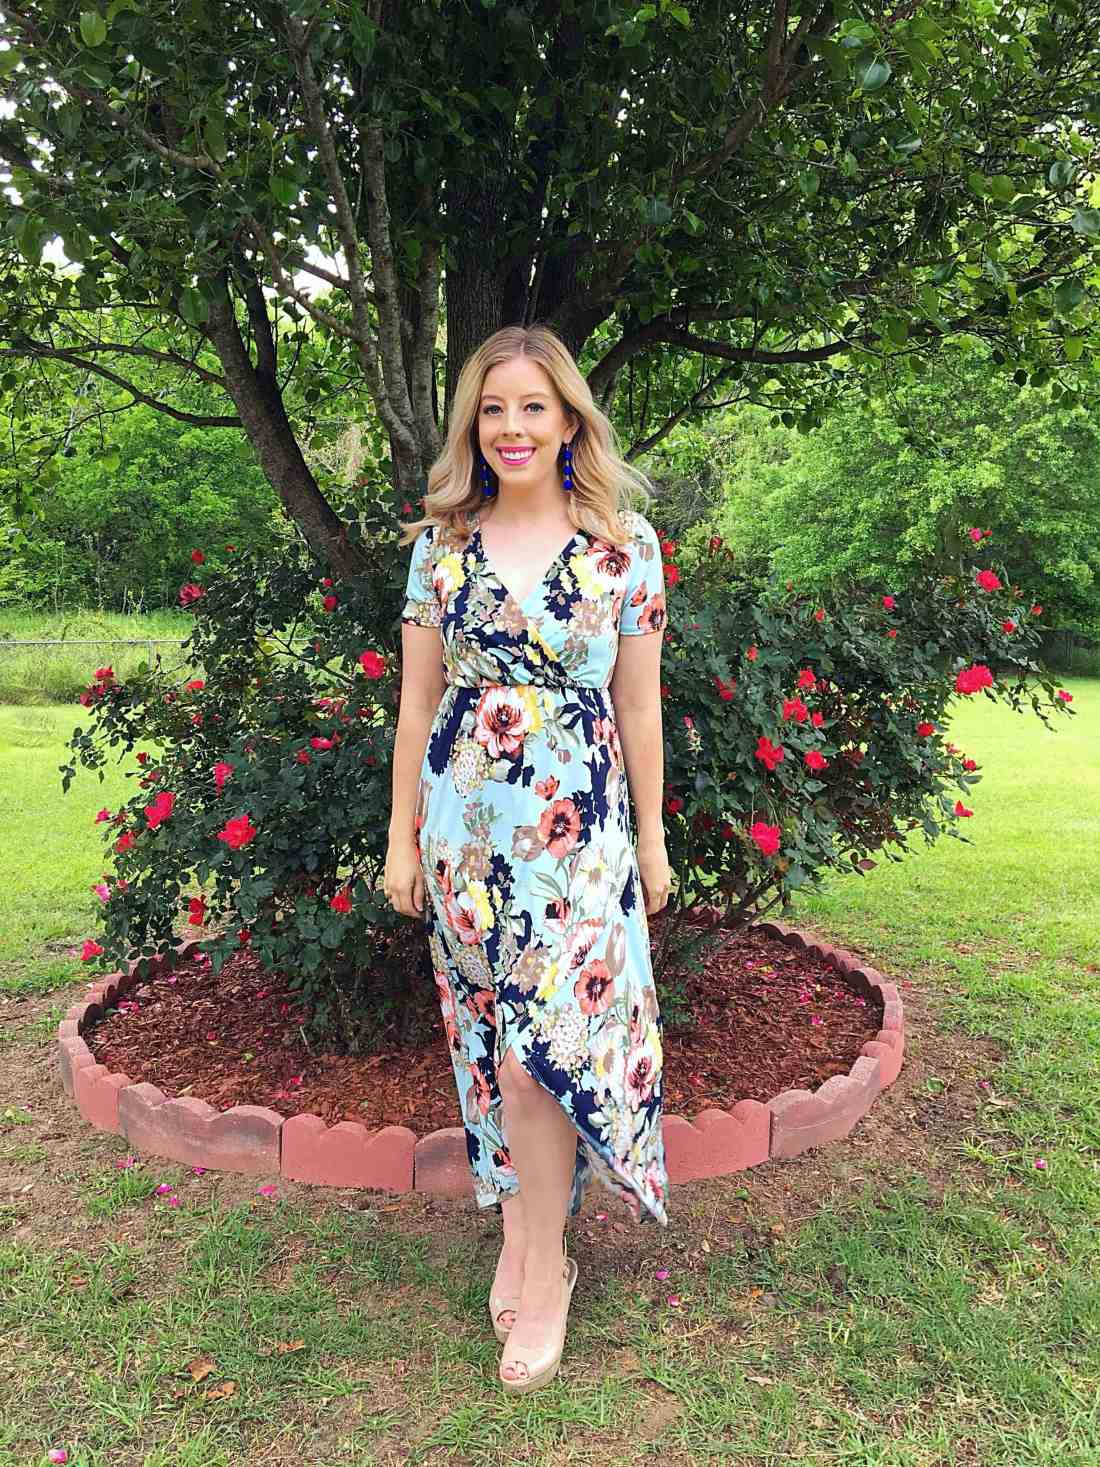 Looking for the perfect dress to buy for spring? This beautiful spring floral maxi dress features a gorgeous floral print, pastel colors, and a tulip hemline that is universally flattering. This beautiful maxi works great for both special occasions or casual events and pairs nicely with fun, spring accessories.